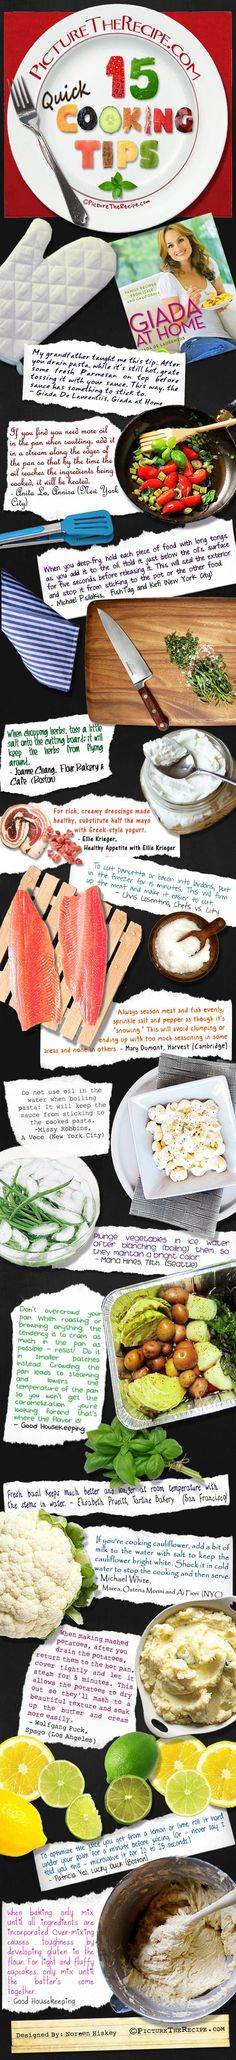 Quick-Cooking-Tips